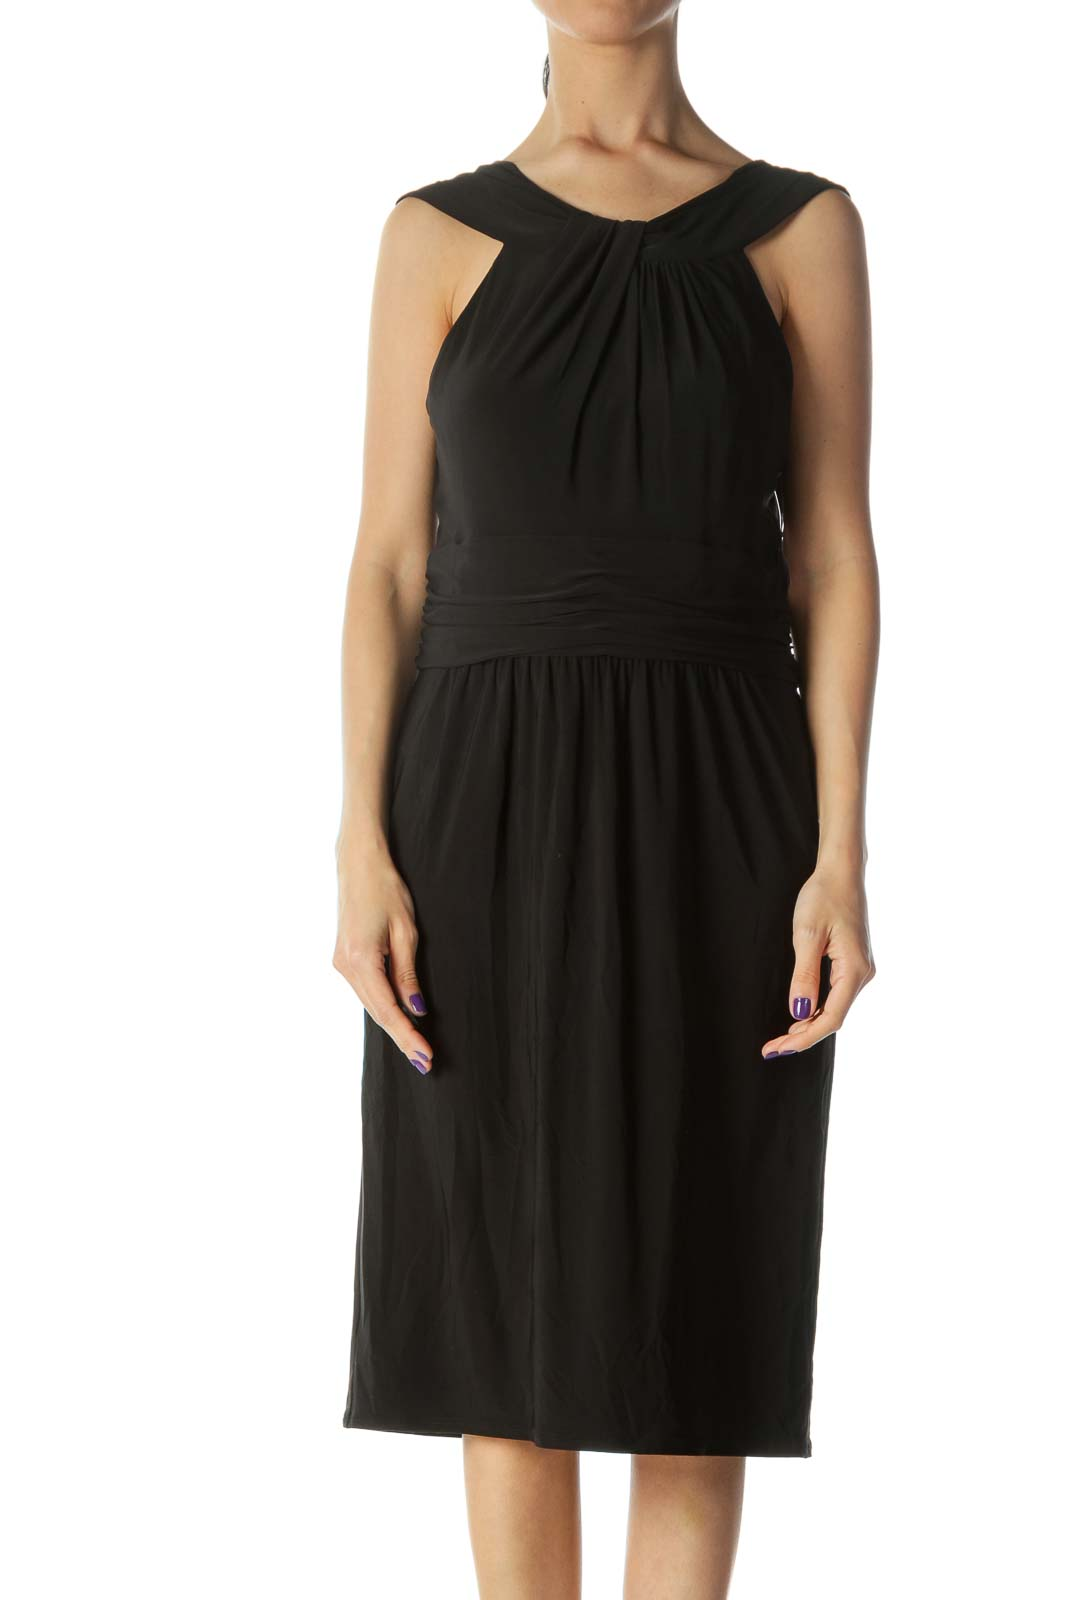 Black Sleeveless Evening Dress